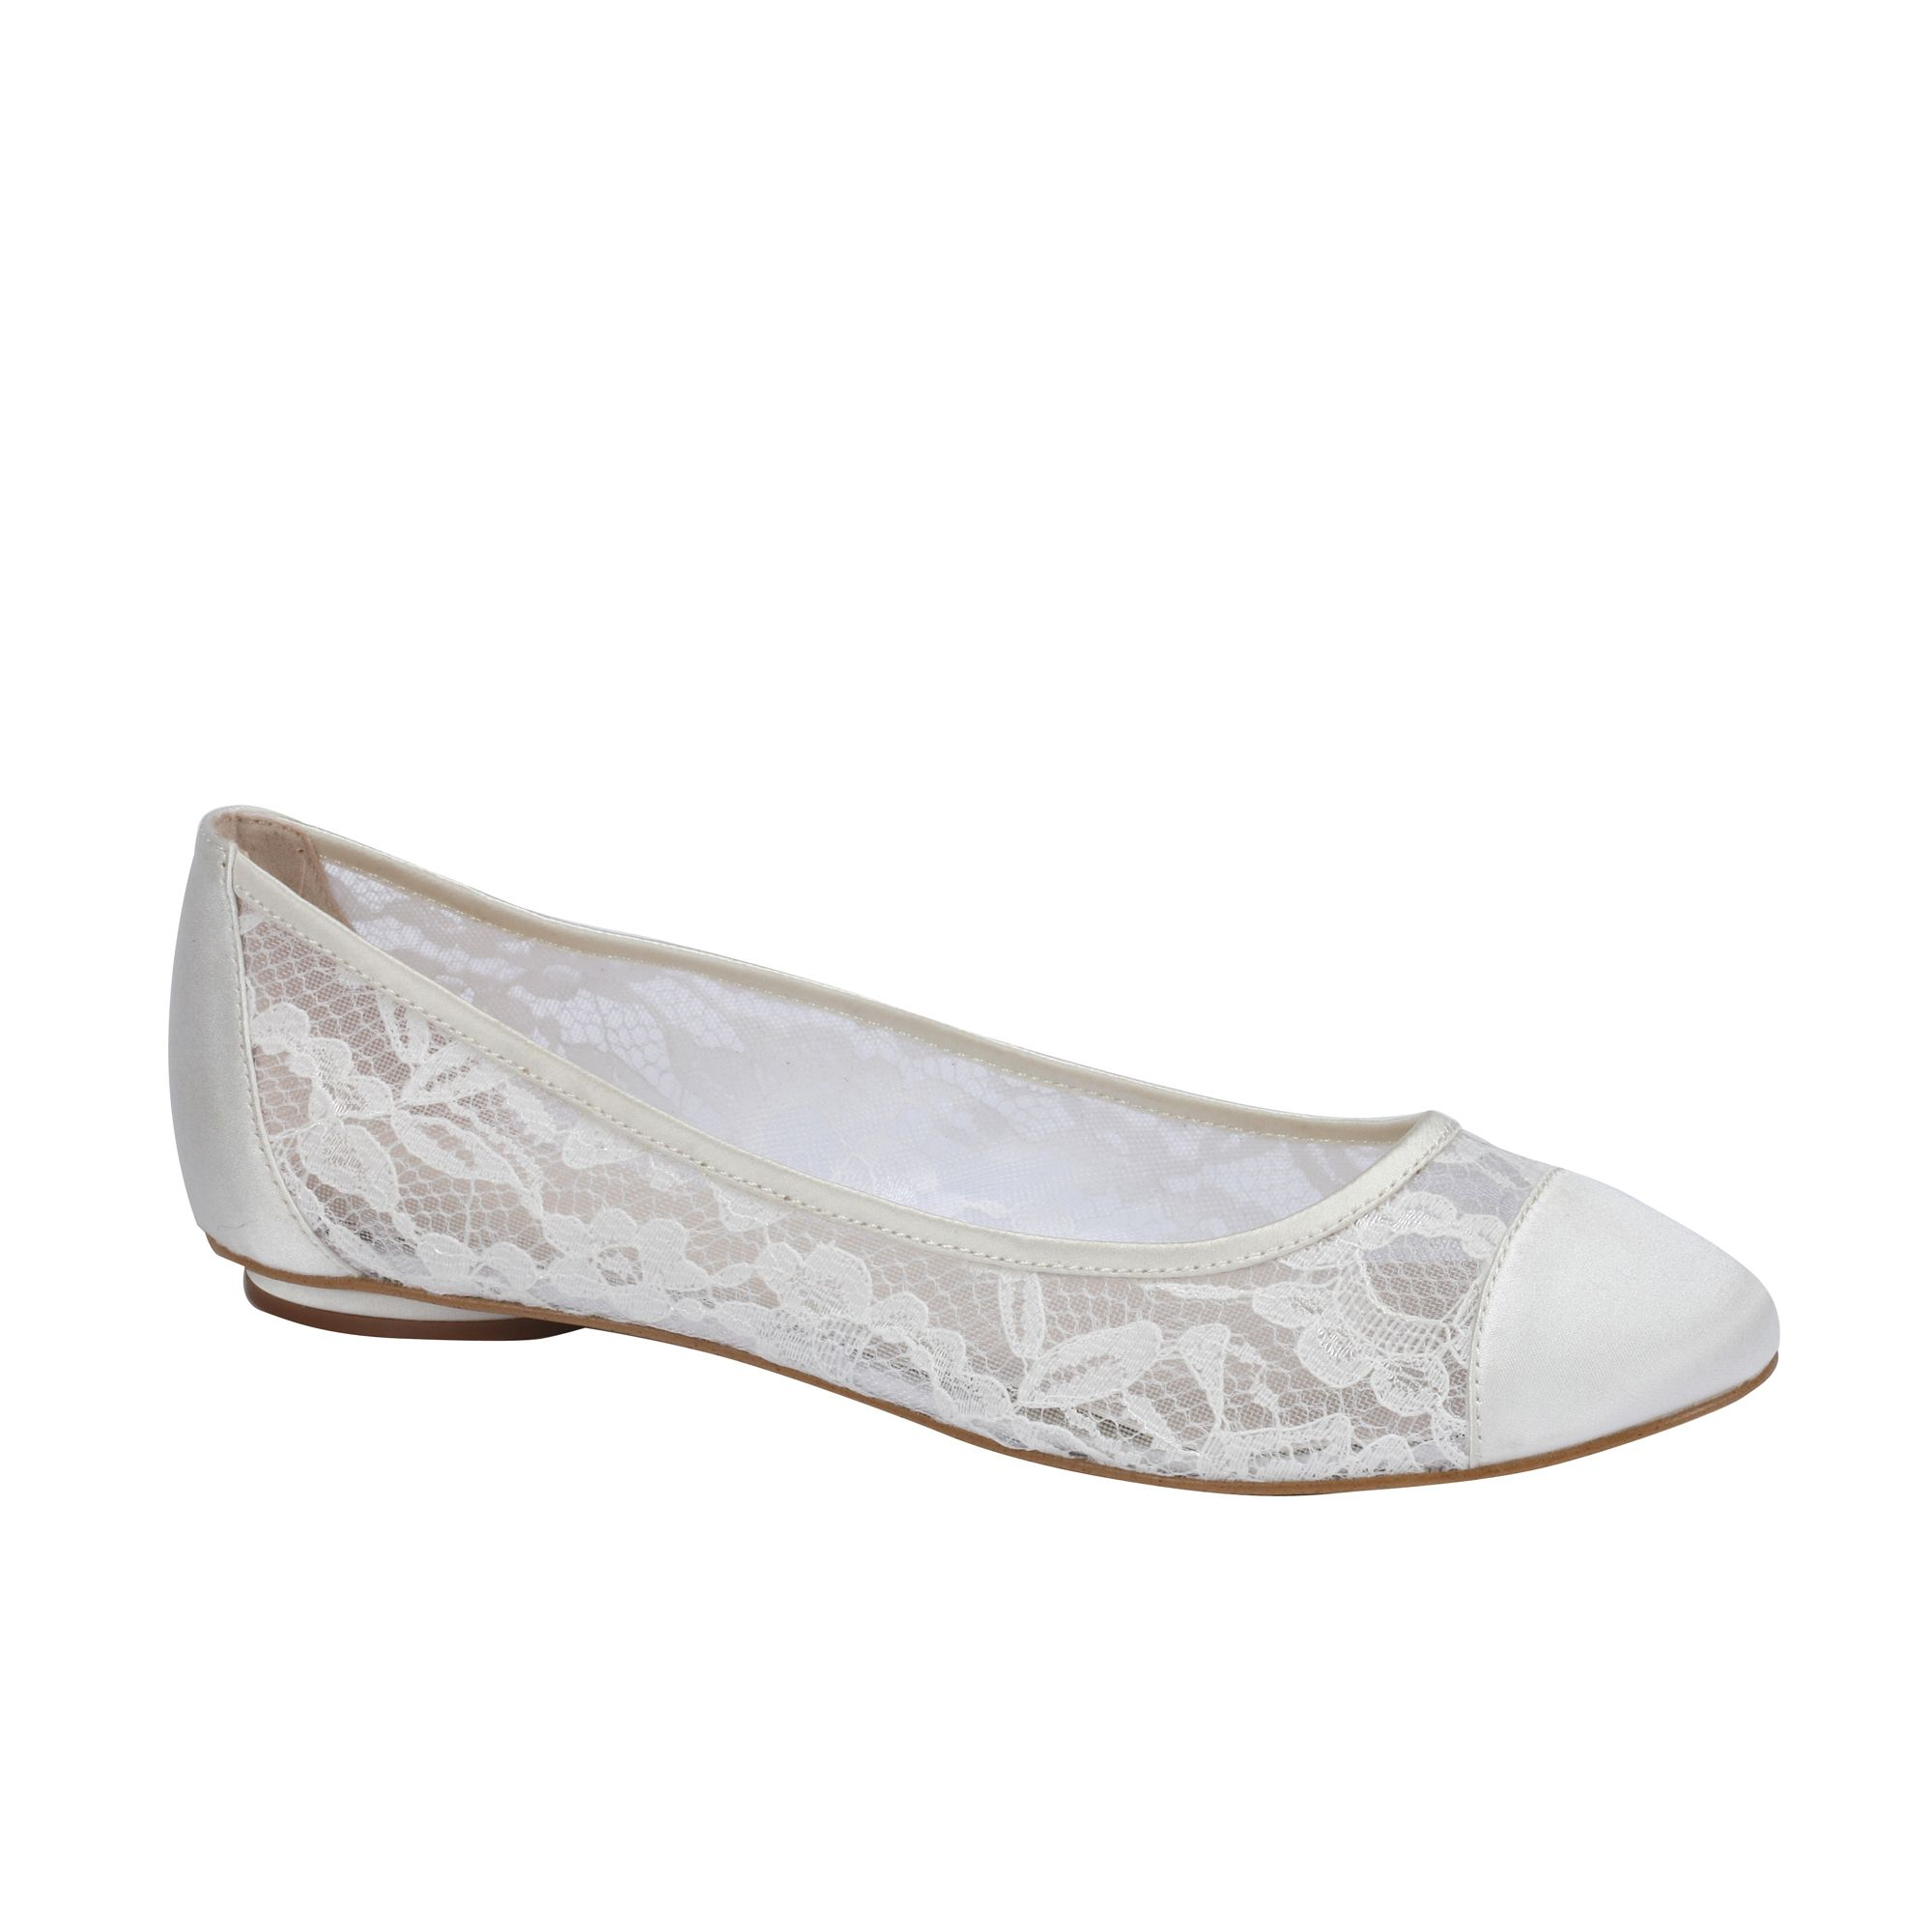 Ballet Pump Shoes Uk